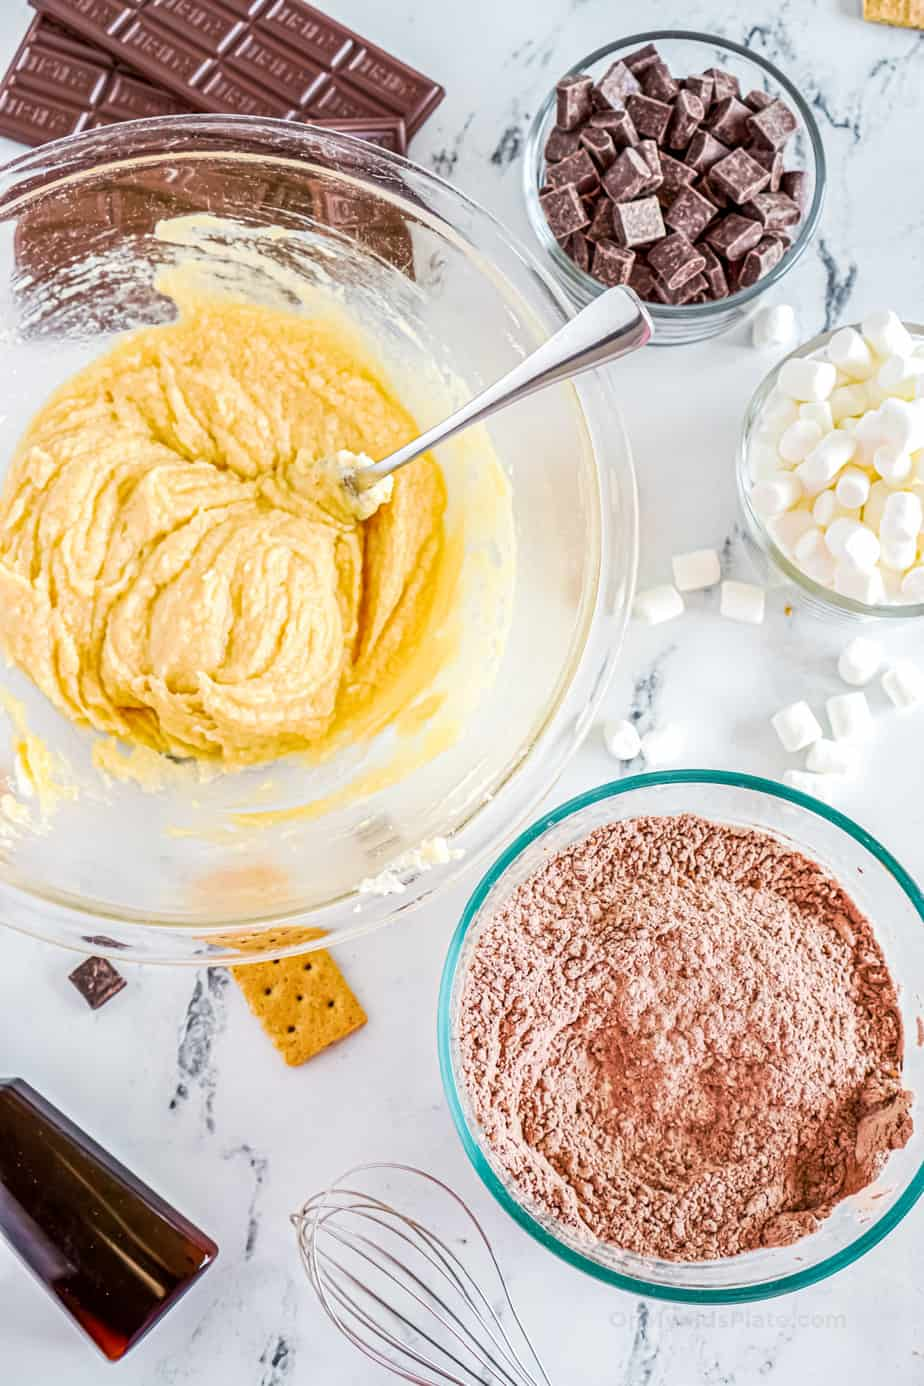 Two bowls with wet and dry cookie dough mixtures ready to be mixed and other cookie ingredients such as chocolate and marshamallows in bowls nearby.